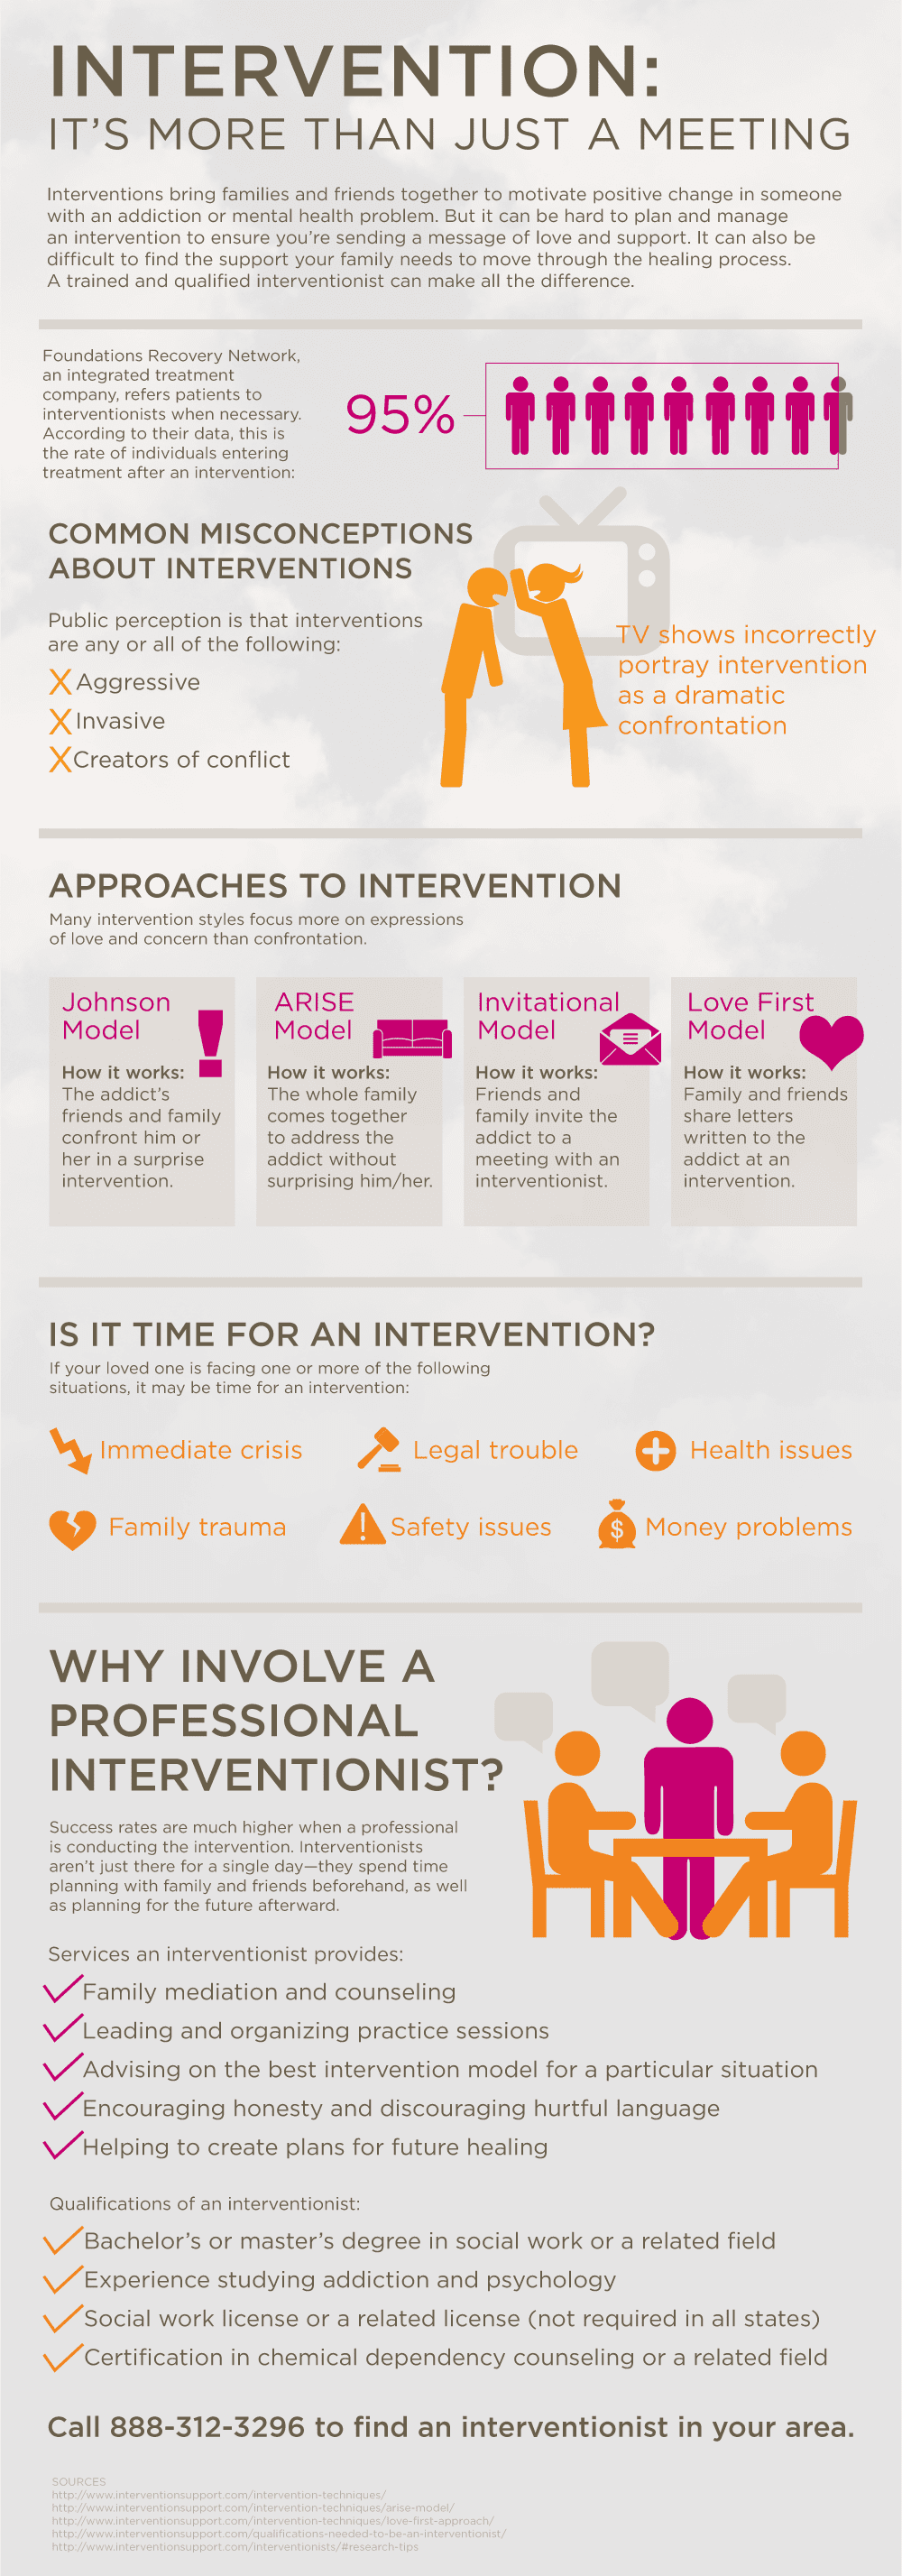 its important to understand when an intervention is necessary for your addicted loved one. if you or a loved one is in immediate crisis, legal trouble, health issues, family trauma, safety issues or money problems- then there should be an intervention. facing your loved one in this situation can save their life from addiction and mental health and its the first, yet the greatest, step that needs to be taken. the reason profession involvement in the intervention process is whats most important is because they can provide you with the resources you need pre and post intervention. they are educated in this area and can handle the situation in order to help your family overall.